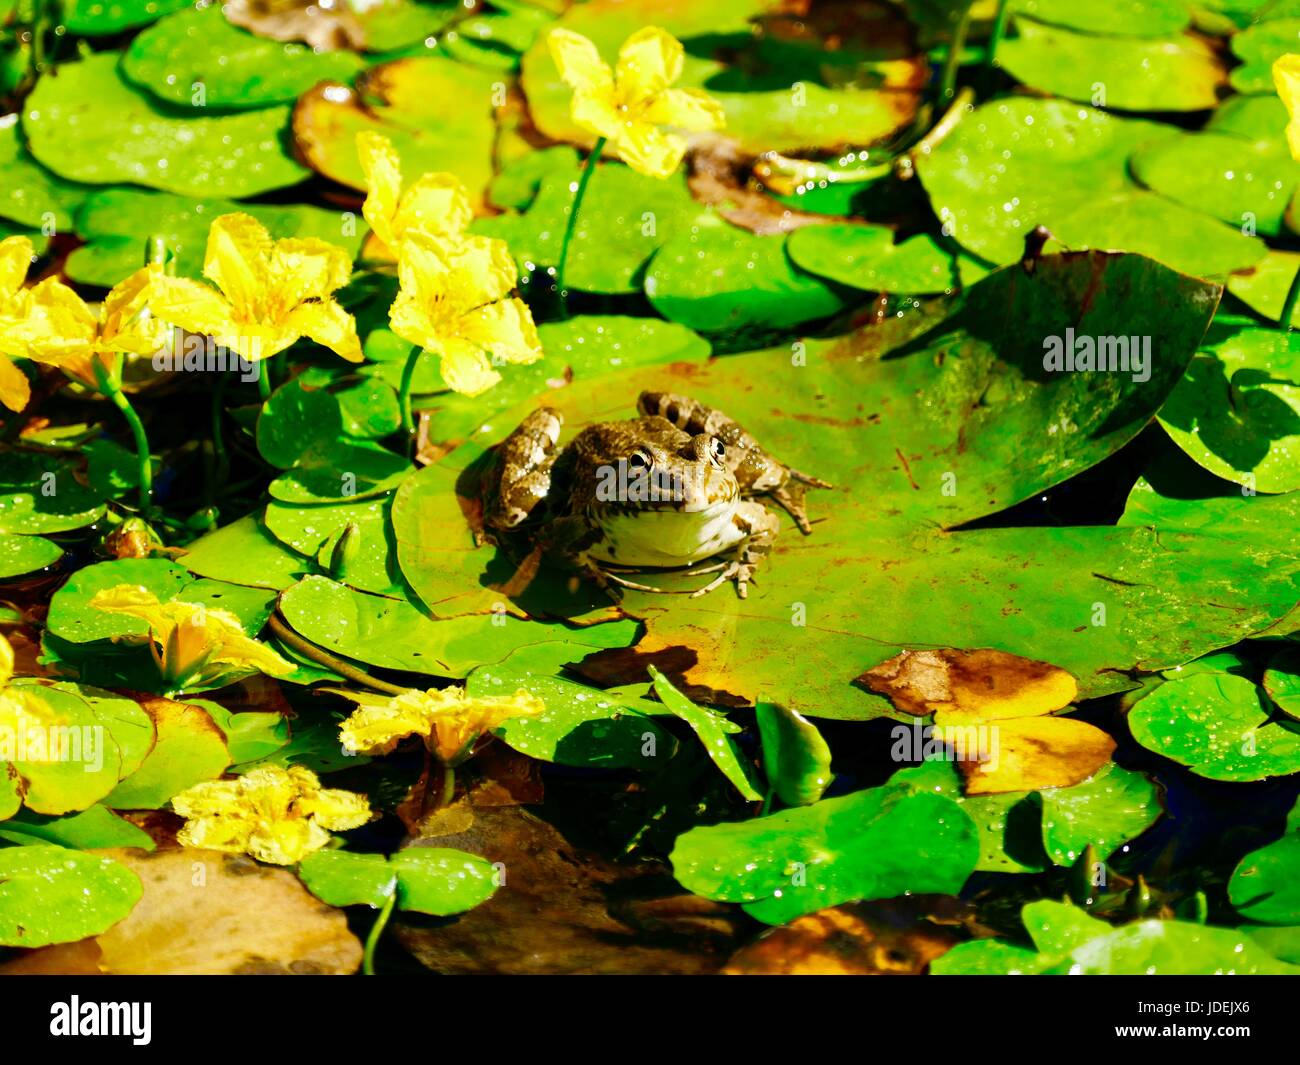 European edible frog resting on a lily pad in path of overhead sprinkler. Paris, France - Stock Image